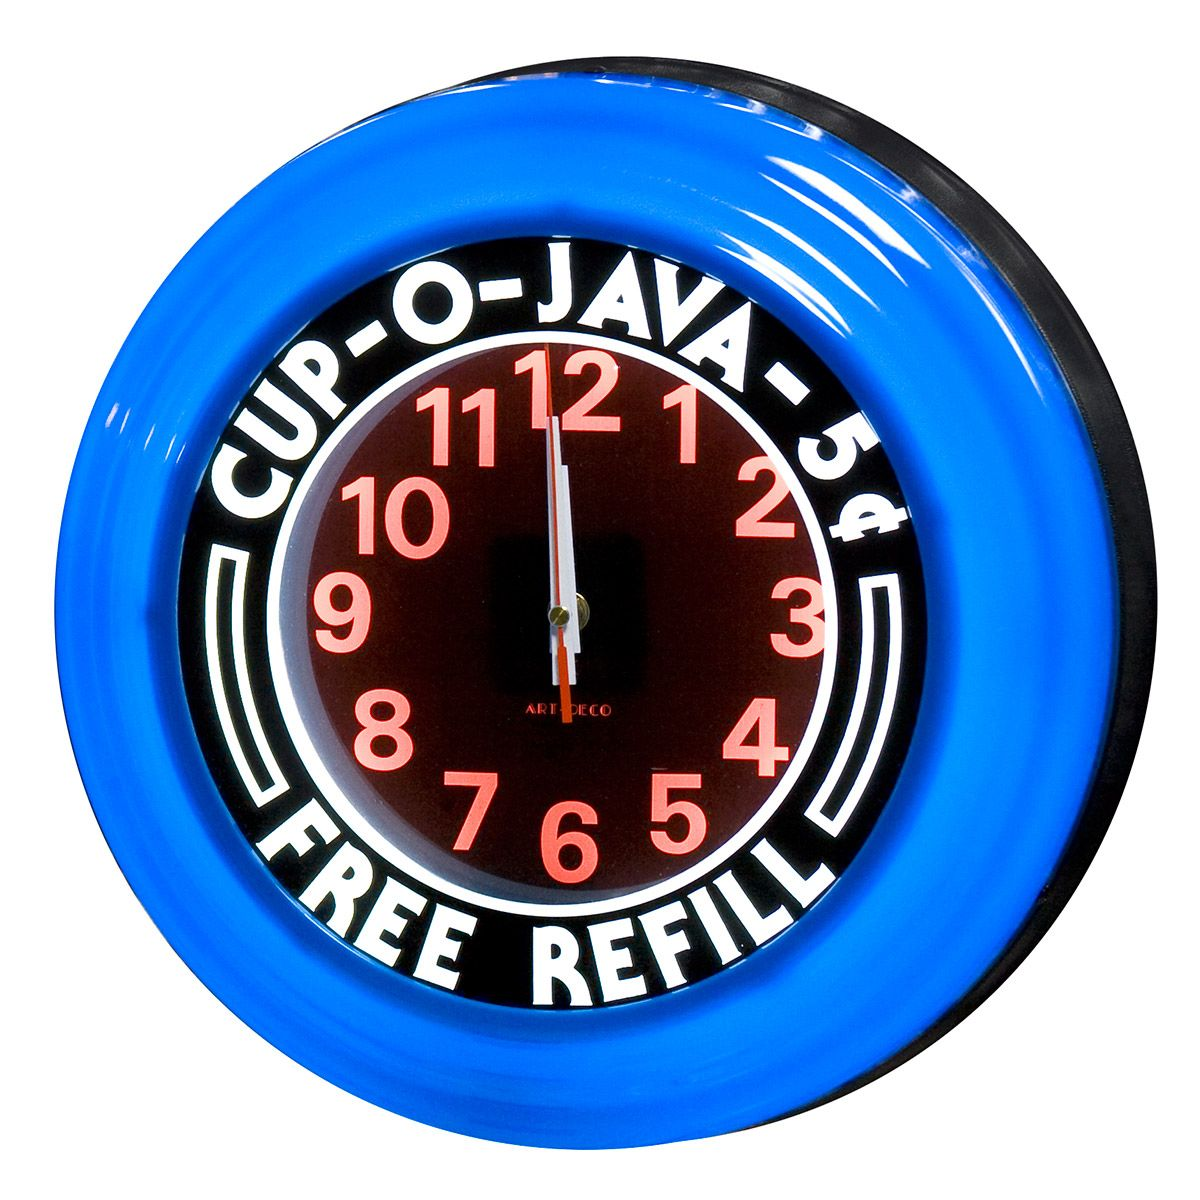 Cup O Java Free Refill Blue Lighted Diner Clock Wall Clock Art Deco Clock Wall Clock